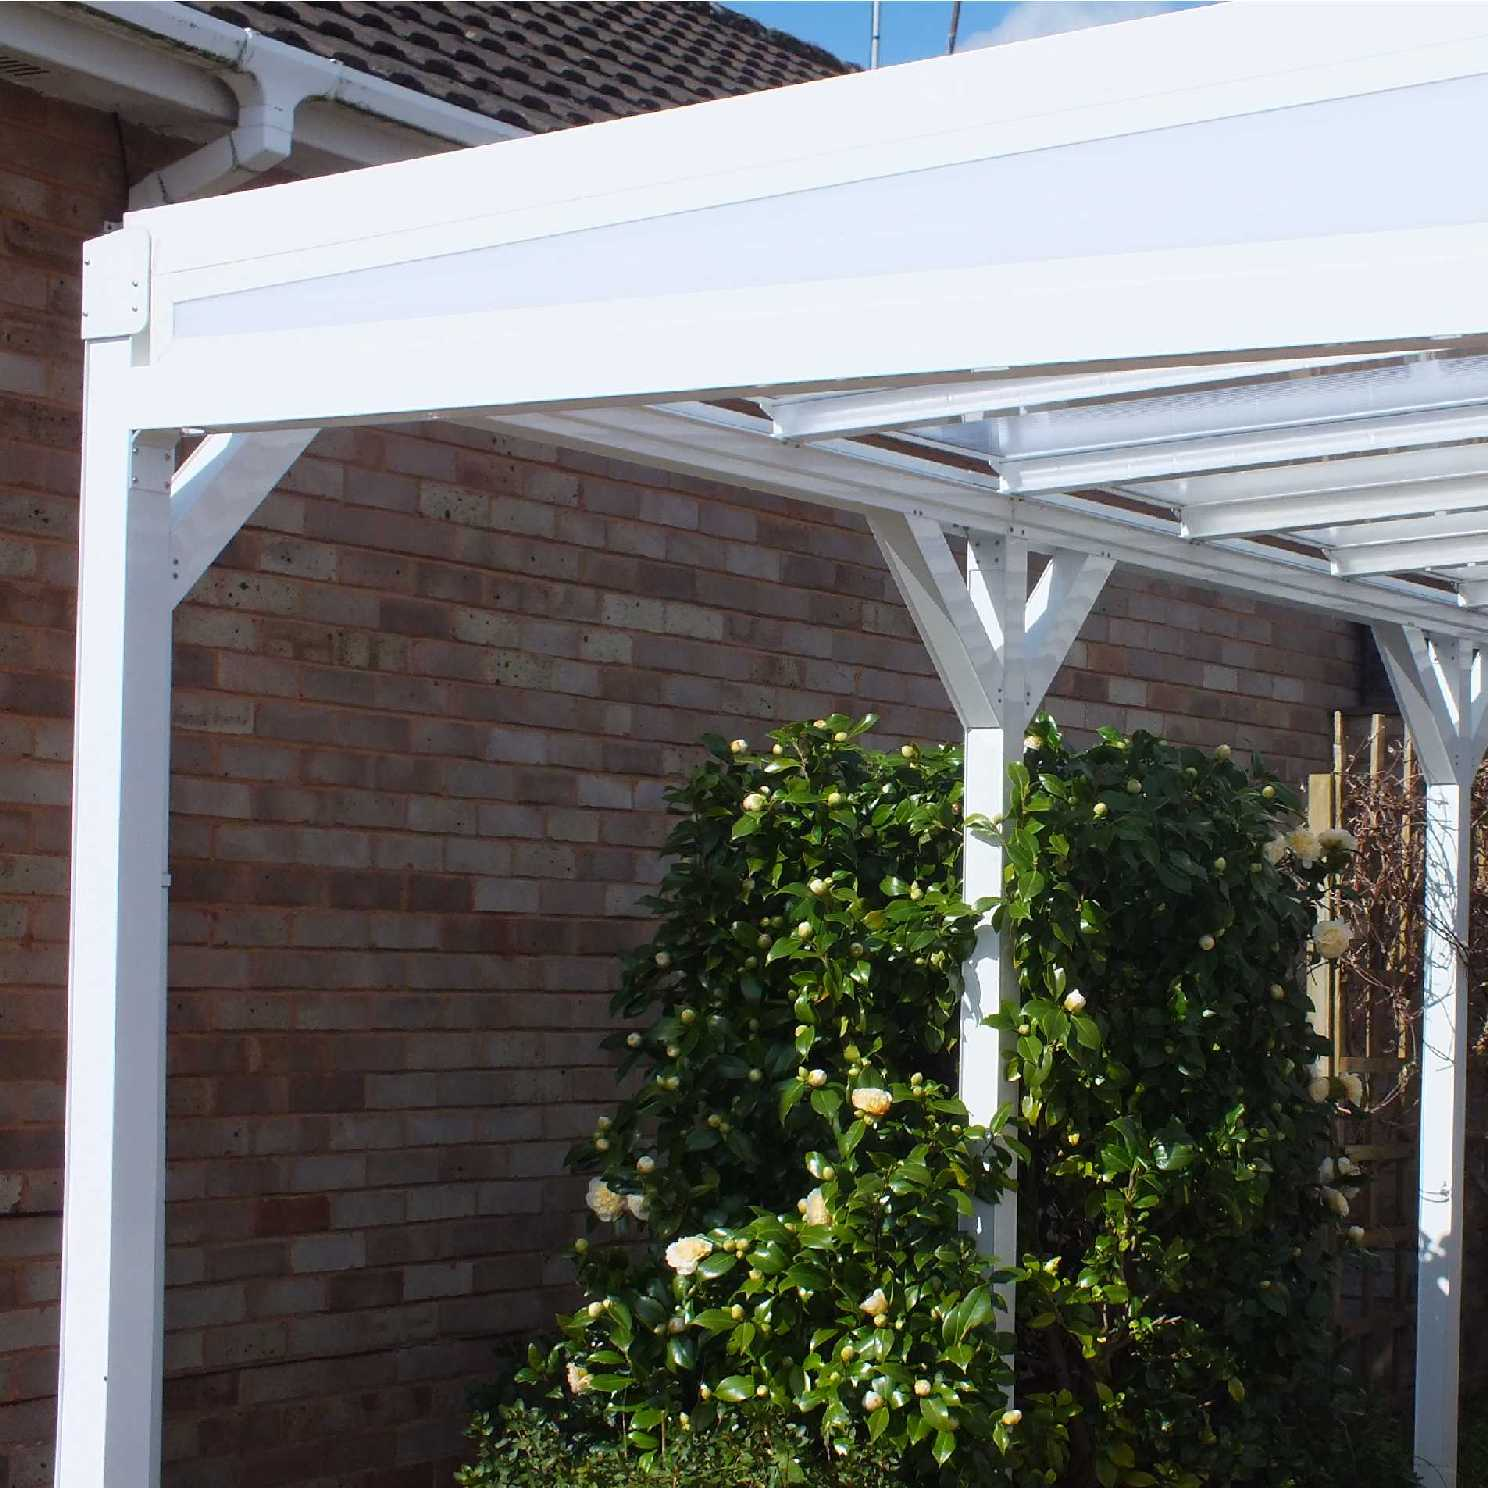 Omega Smart White Lean-To Canopy with 16mm Polycarbonate Glazing - 3.1m (W) x 2.0m (P), (2) Supporting Posts from Omega Build